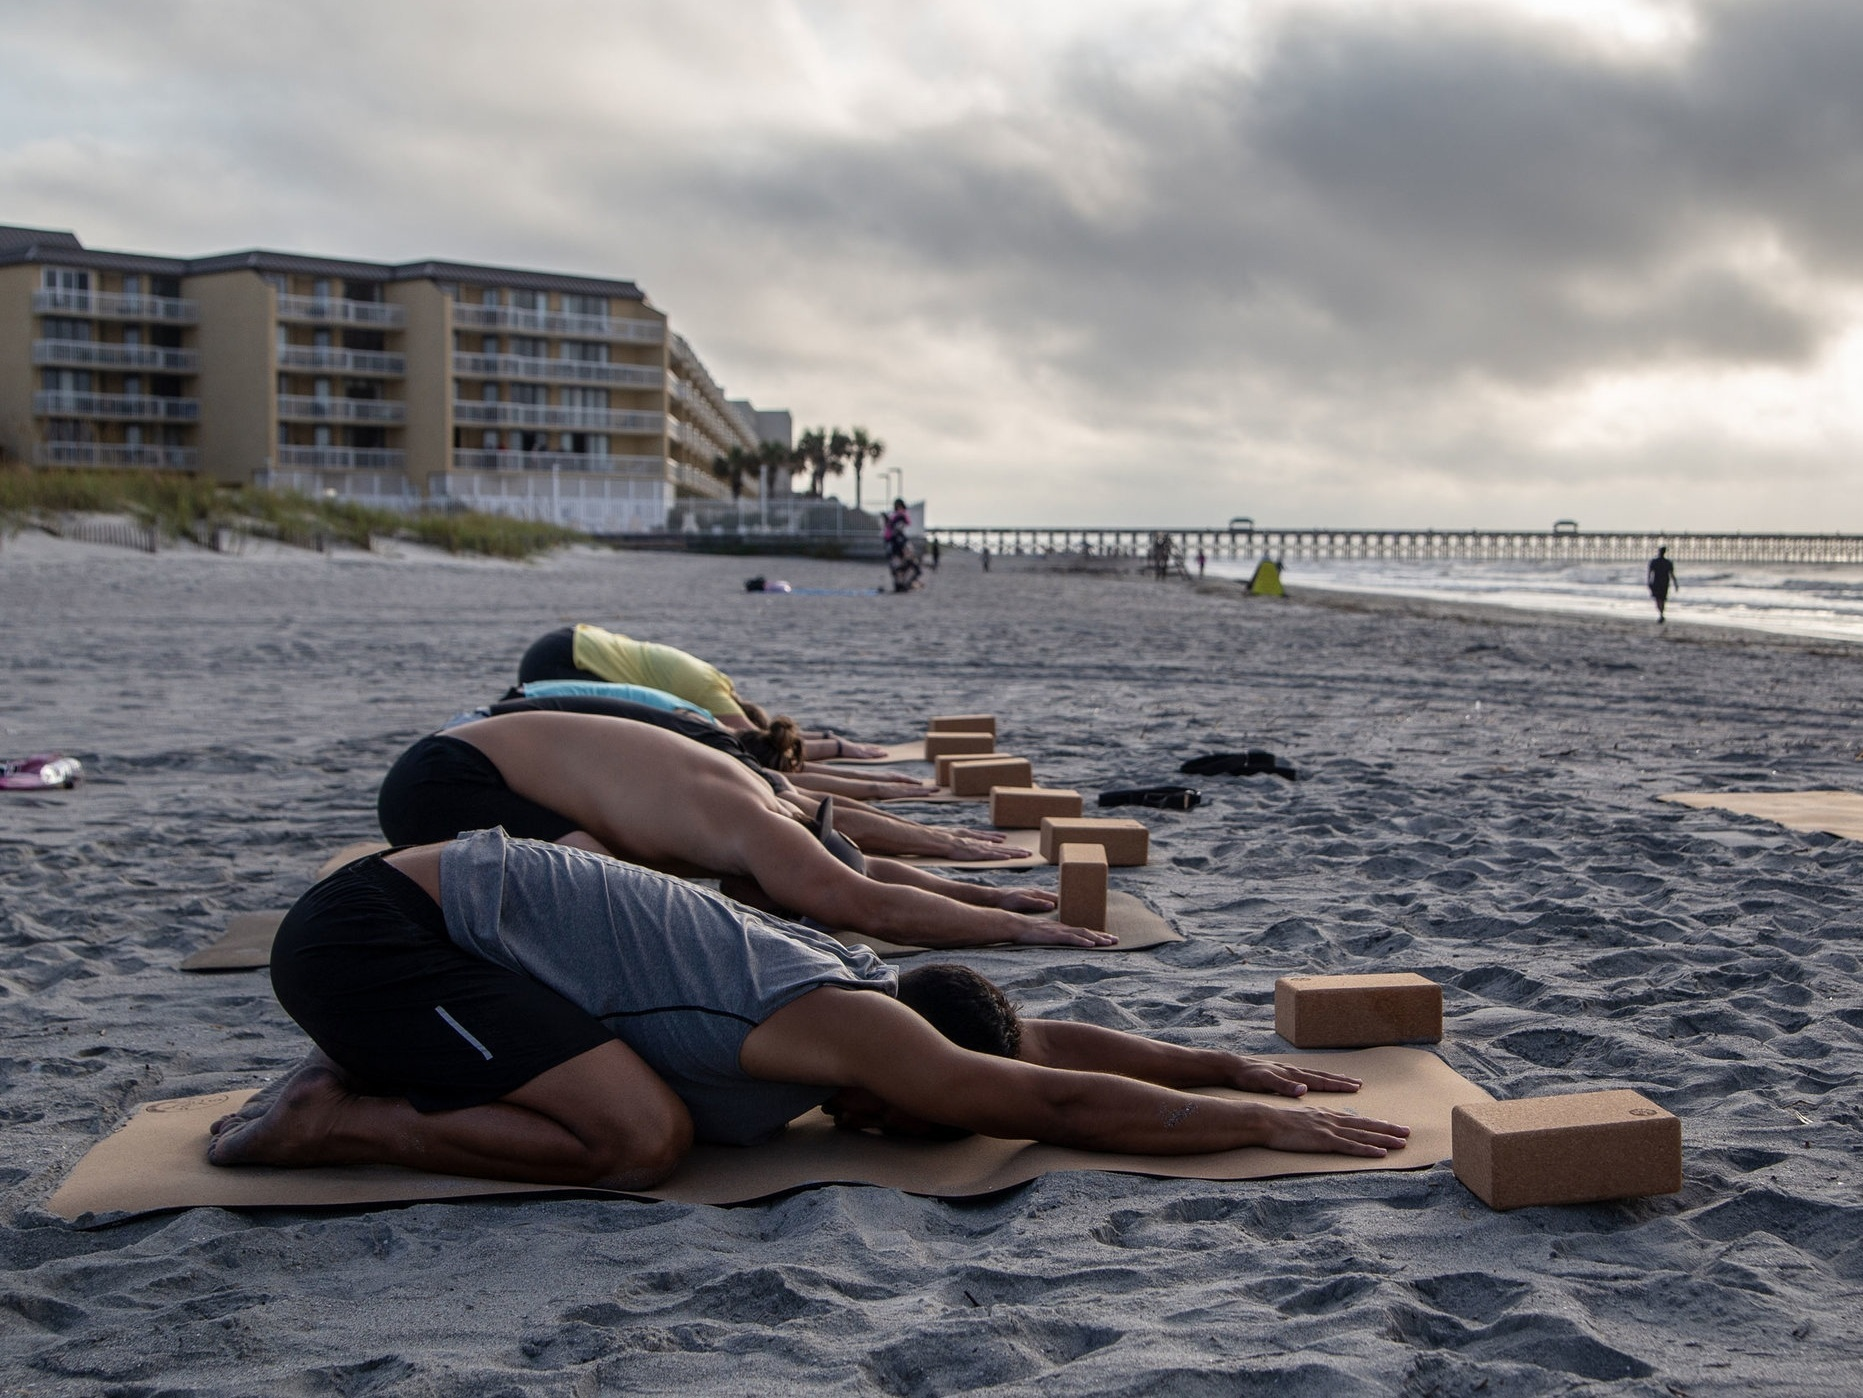 Wellness - In addition to Surf Therapy, WSF provides one on one wellness training, and group yoga classes. Focusing on mindfulness and resiliency, these offerings empower our Veterans to maintain a healthy lifestyle, regardless of whether the ocean is close by.